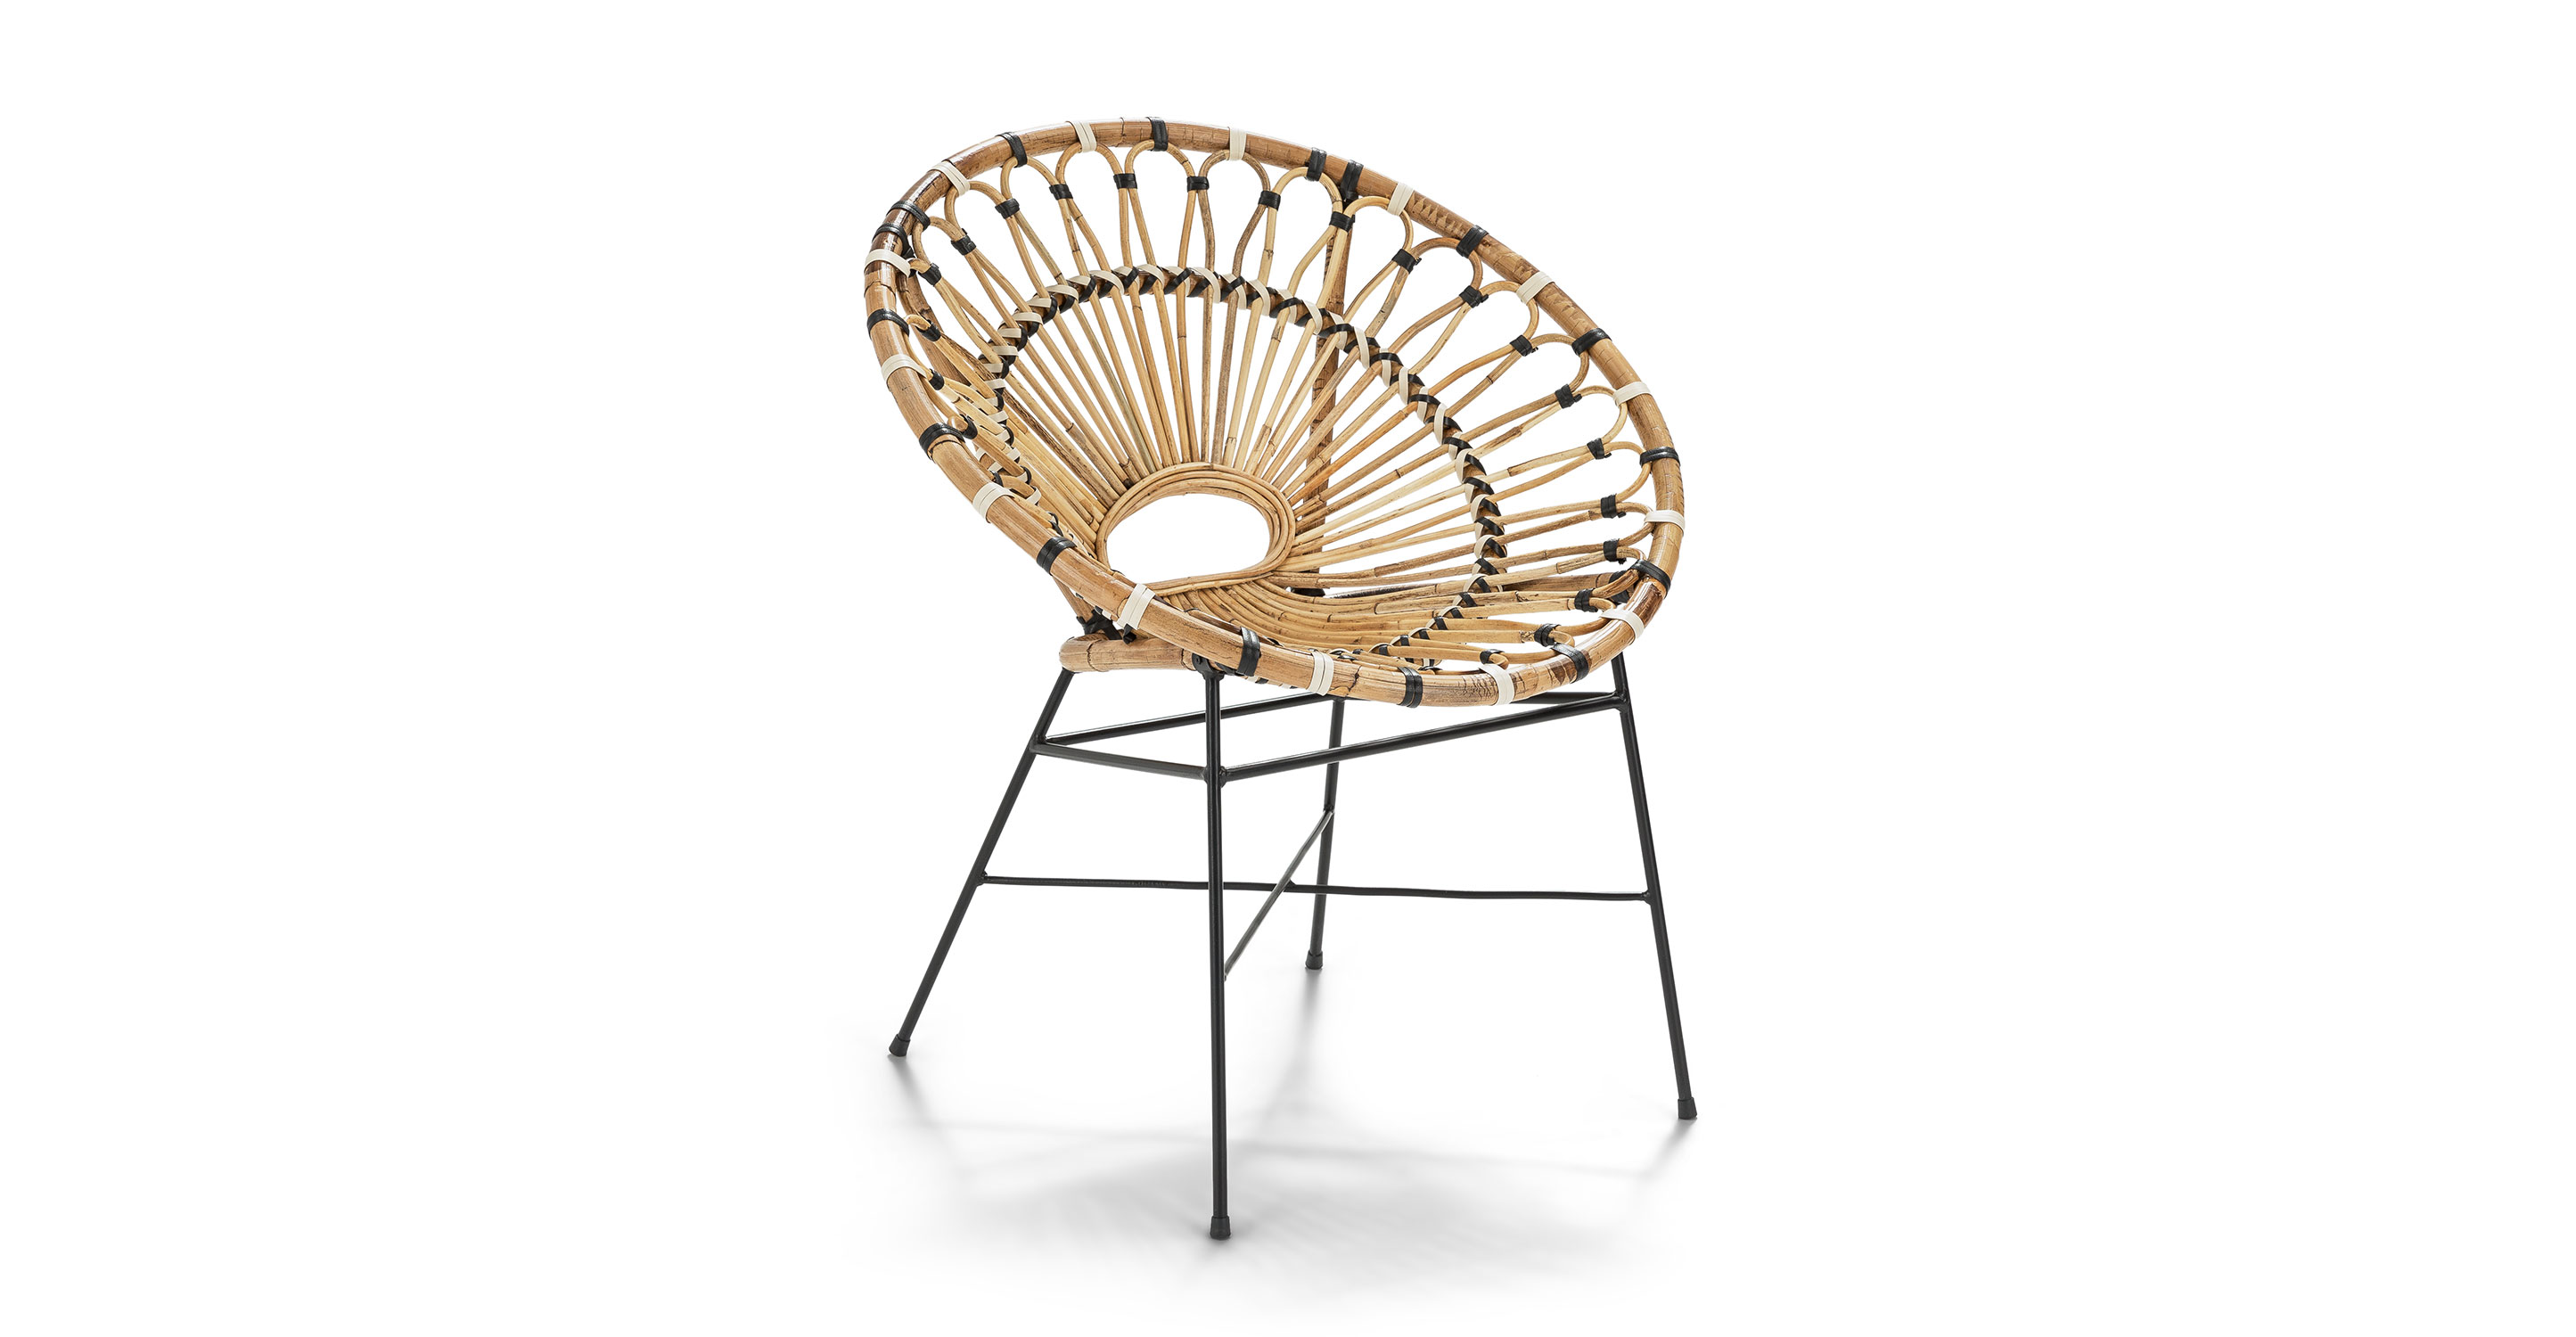 Rattan Outdoor Lounge Chair Daisy Article